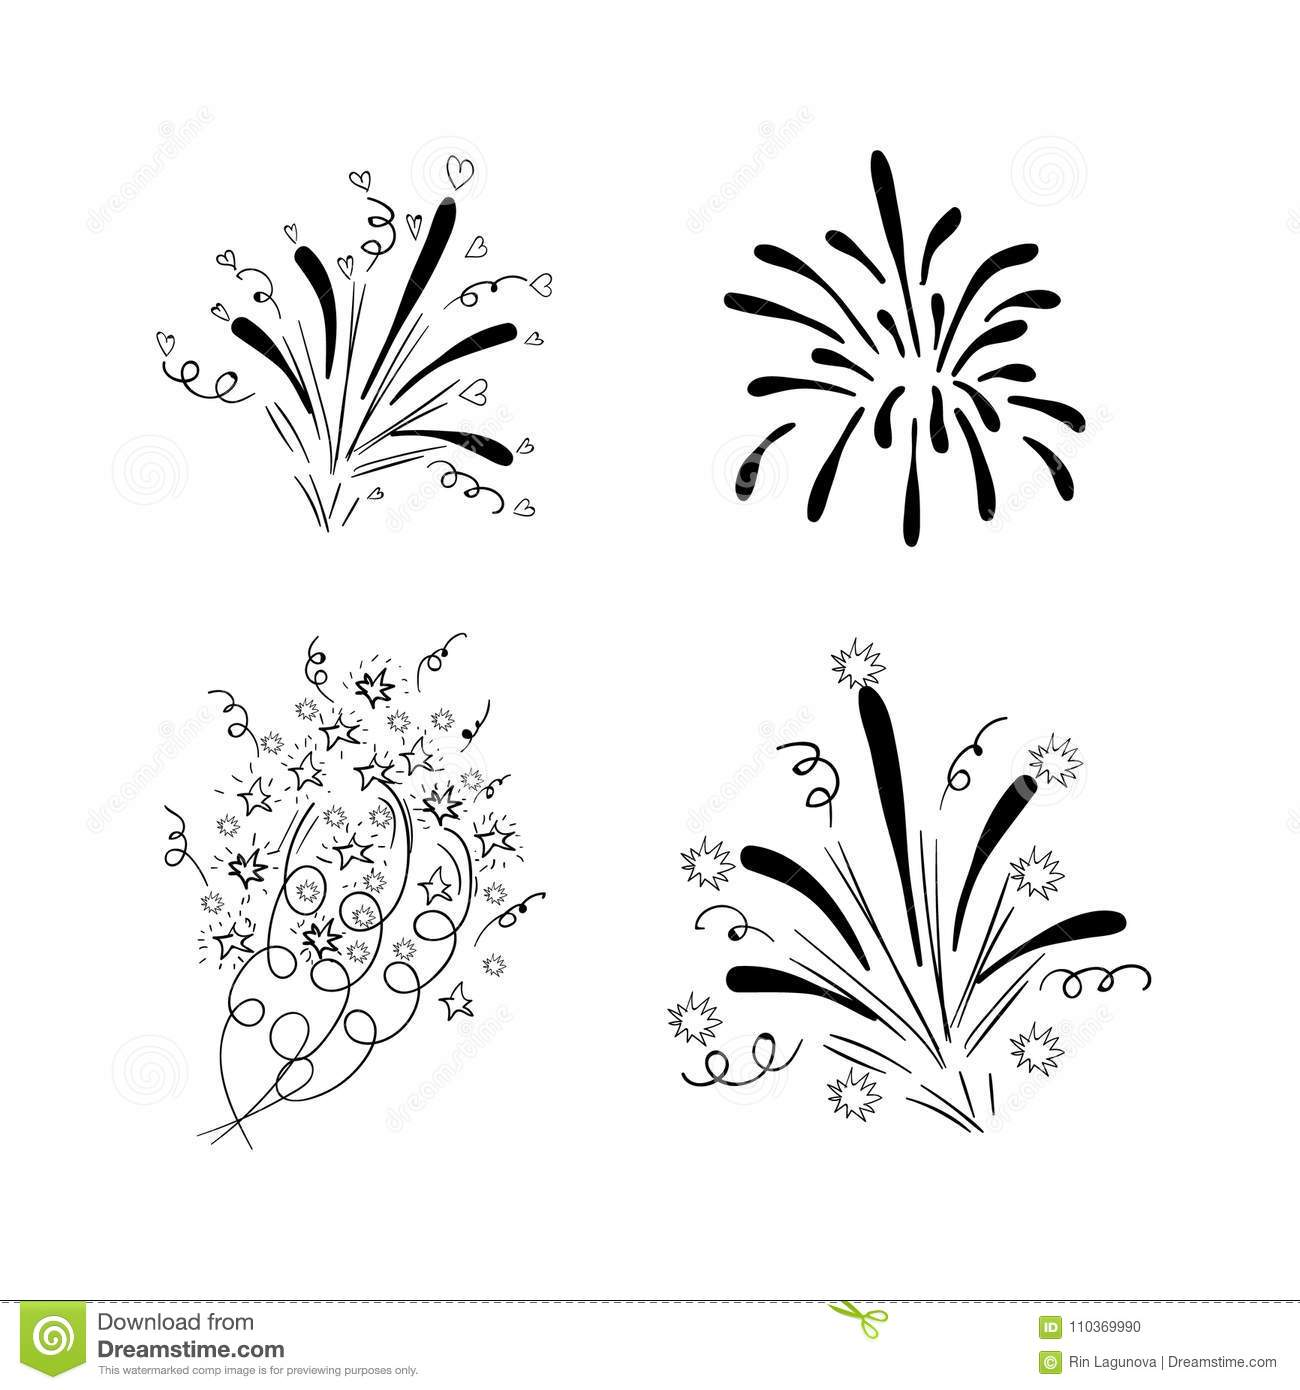 Vector Drawn Firework Explosions Black Drawings Isolated